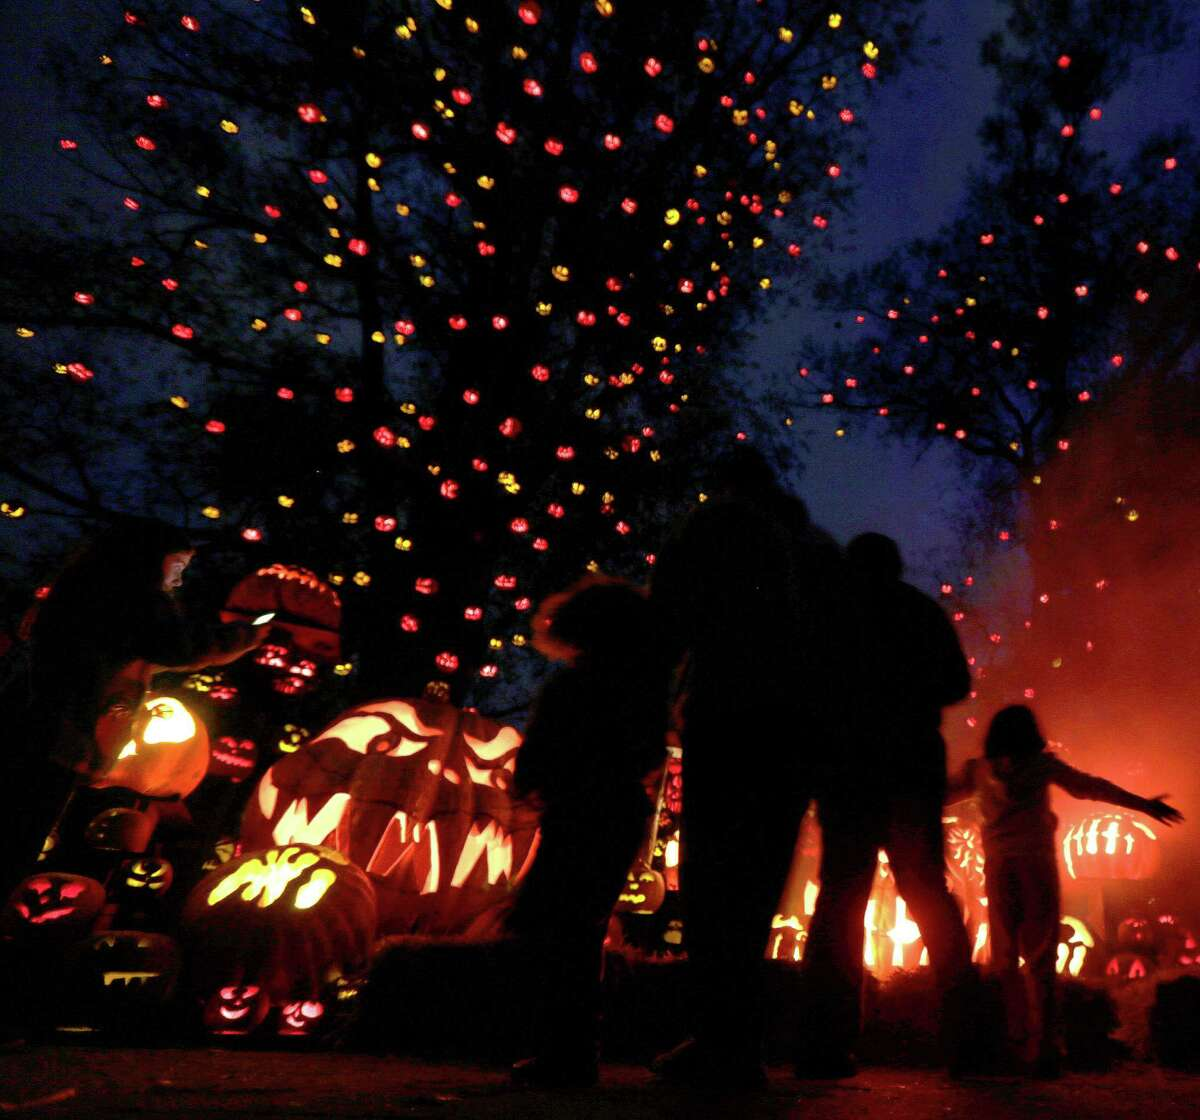 While surrounded by hundreds of pumpkins, a a group stops to look at the illuminated jack o' lanterns at the Roger Williams Park Zoo in Providence, R.I., Monday, Oct. 8, 2012. Some 5,000 carved pumpkins are on display for this year?'s Jack-o?'-lantern Spectacular, one of the nation?'s largest jack-o?'-lantern shows. (AP Photo/Charles Krupa)